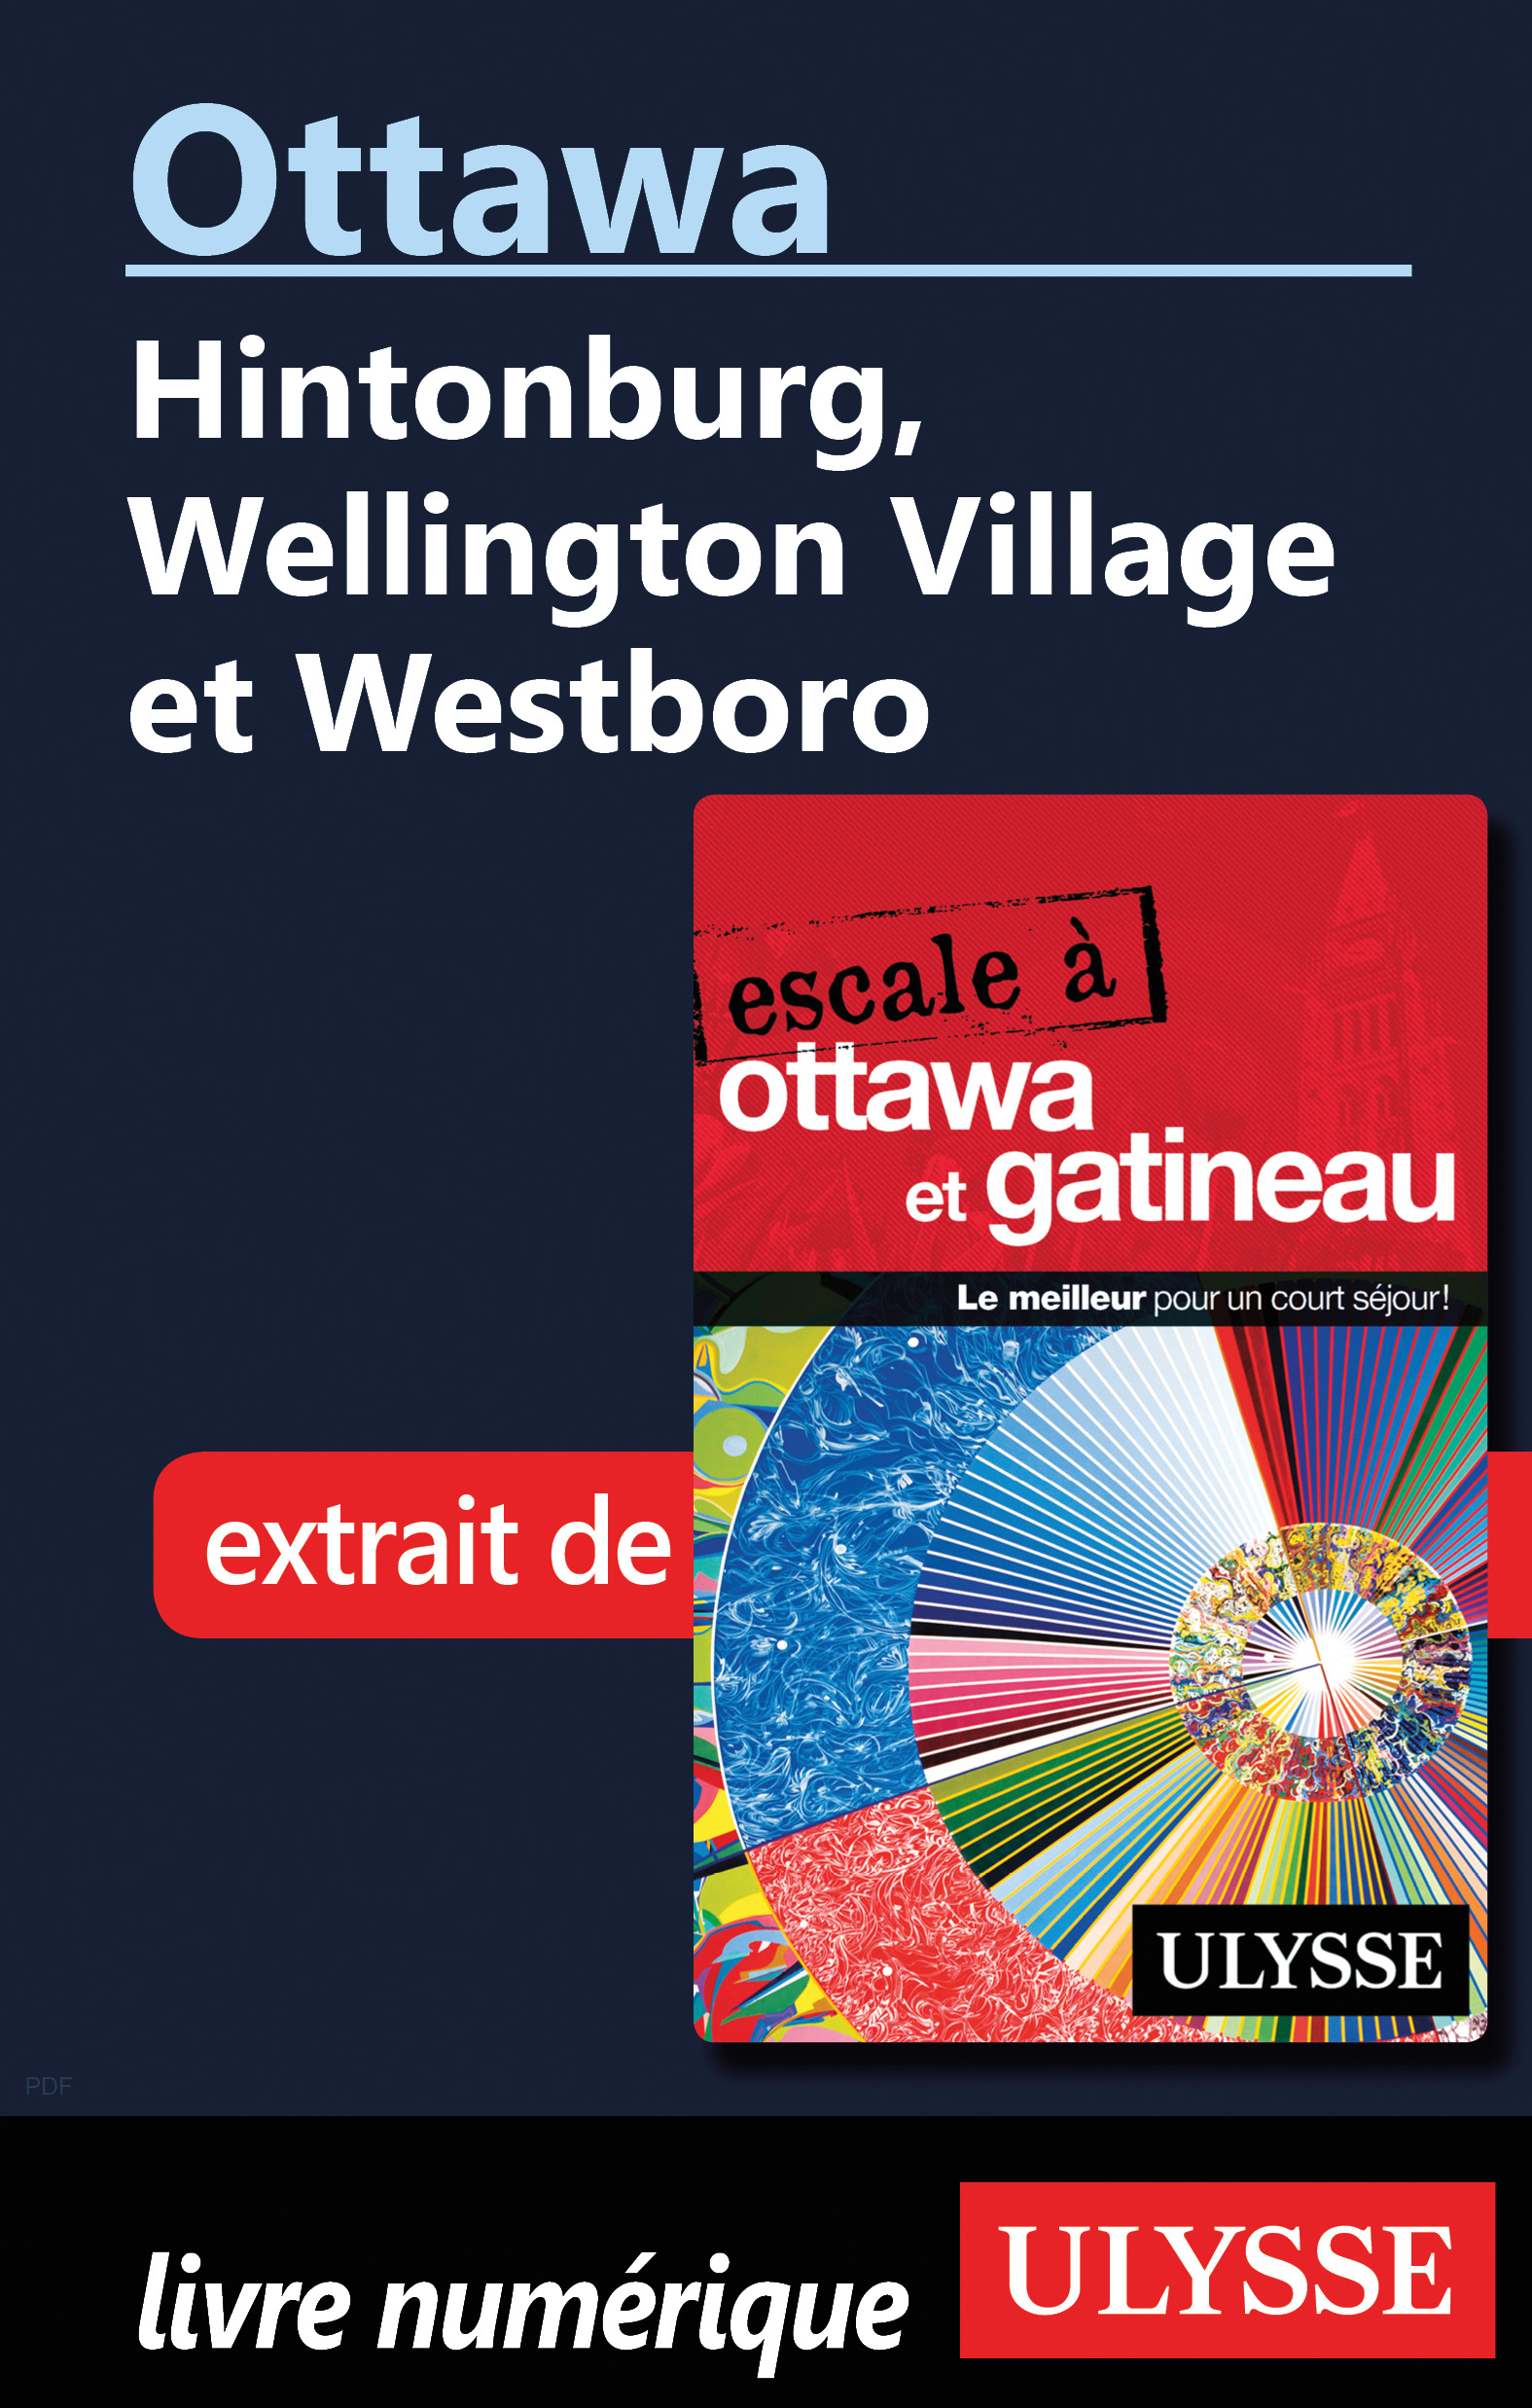 Ottawa: Hintonburg, Wellington Village et Westboro